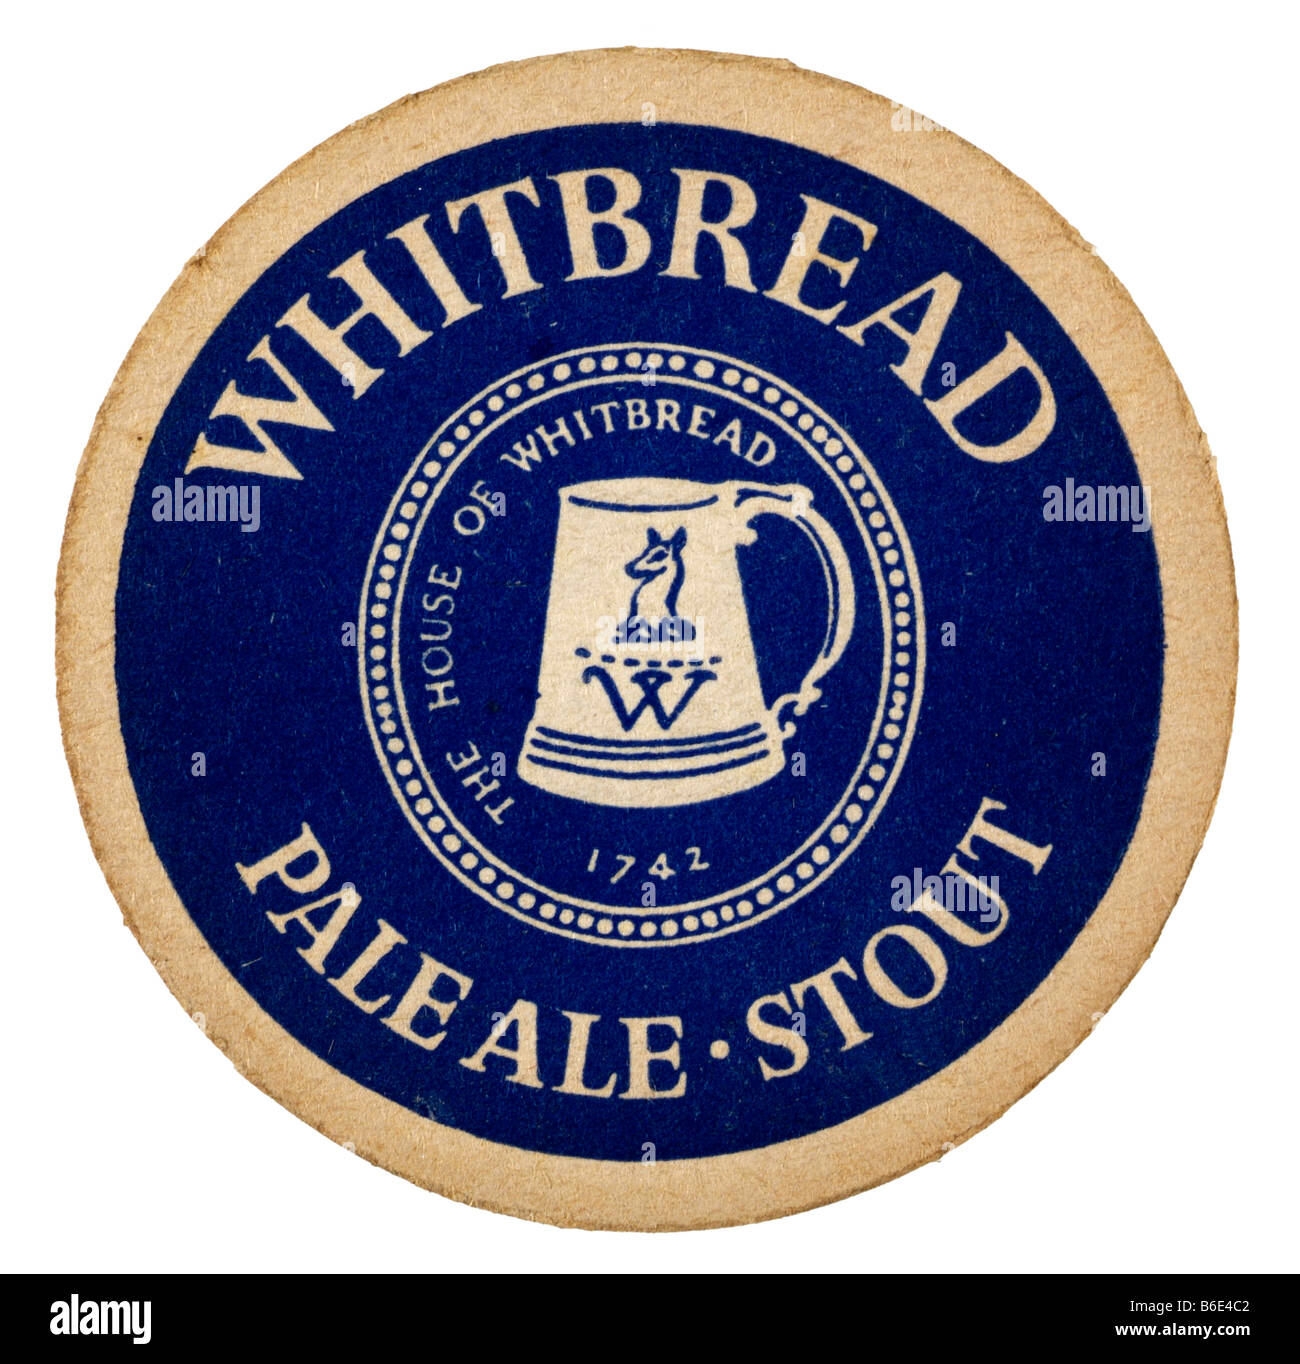 whitbread pale ale stout 1742 beermat coaster rest glasses beer beverages Public houses United Kingdom tables protect - Stock Image